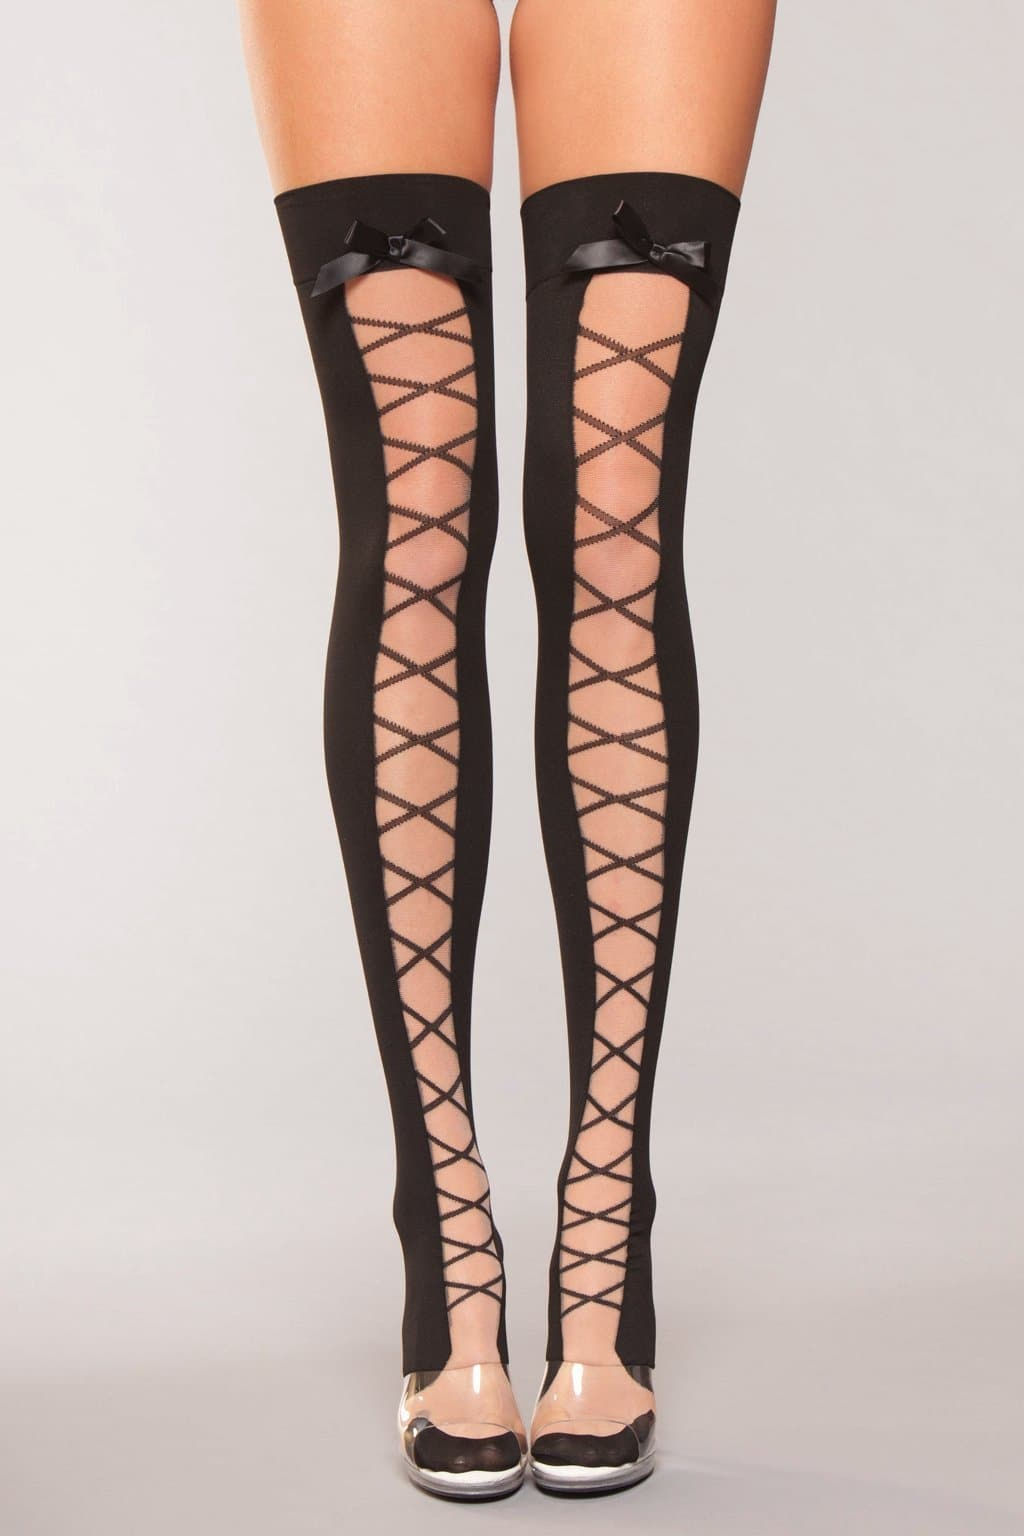 Be Wicked BWH801 Lace Up Over The Knee Hold Ups Corset Print On Nude Mesh